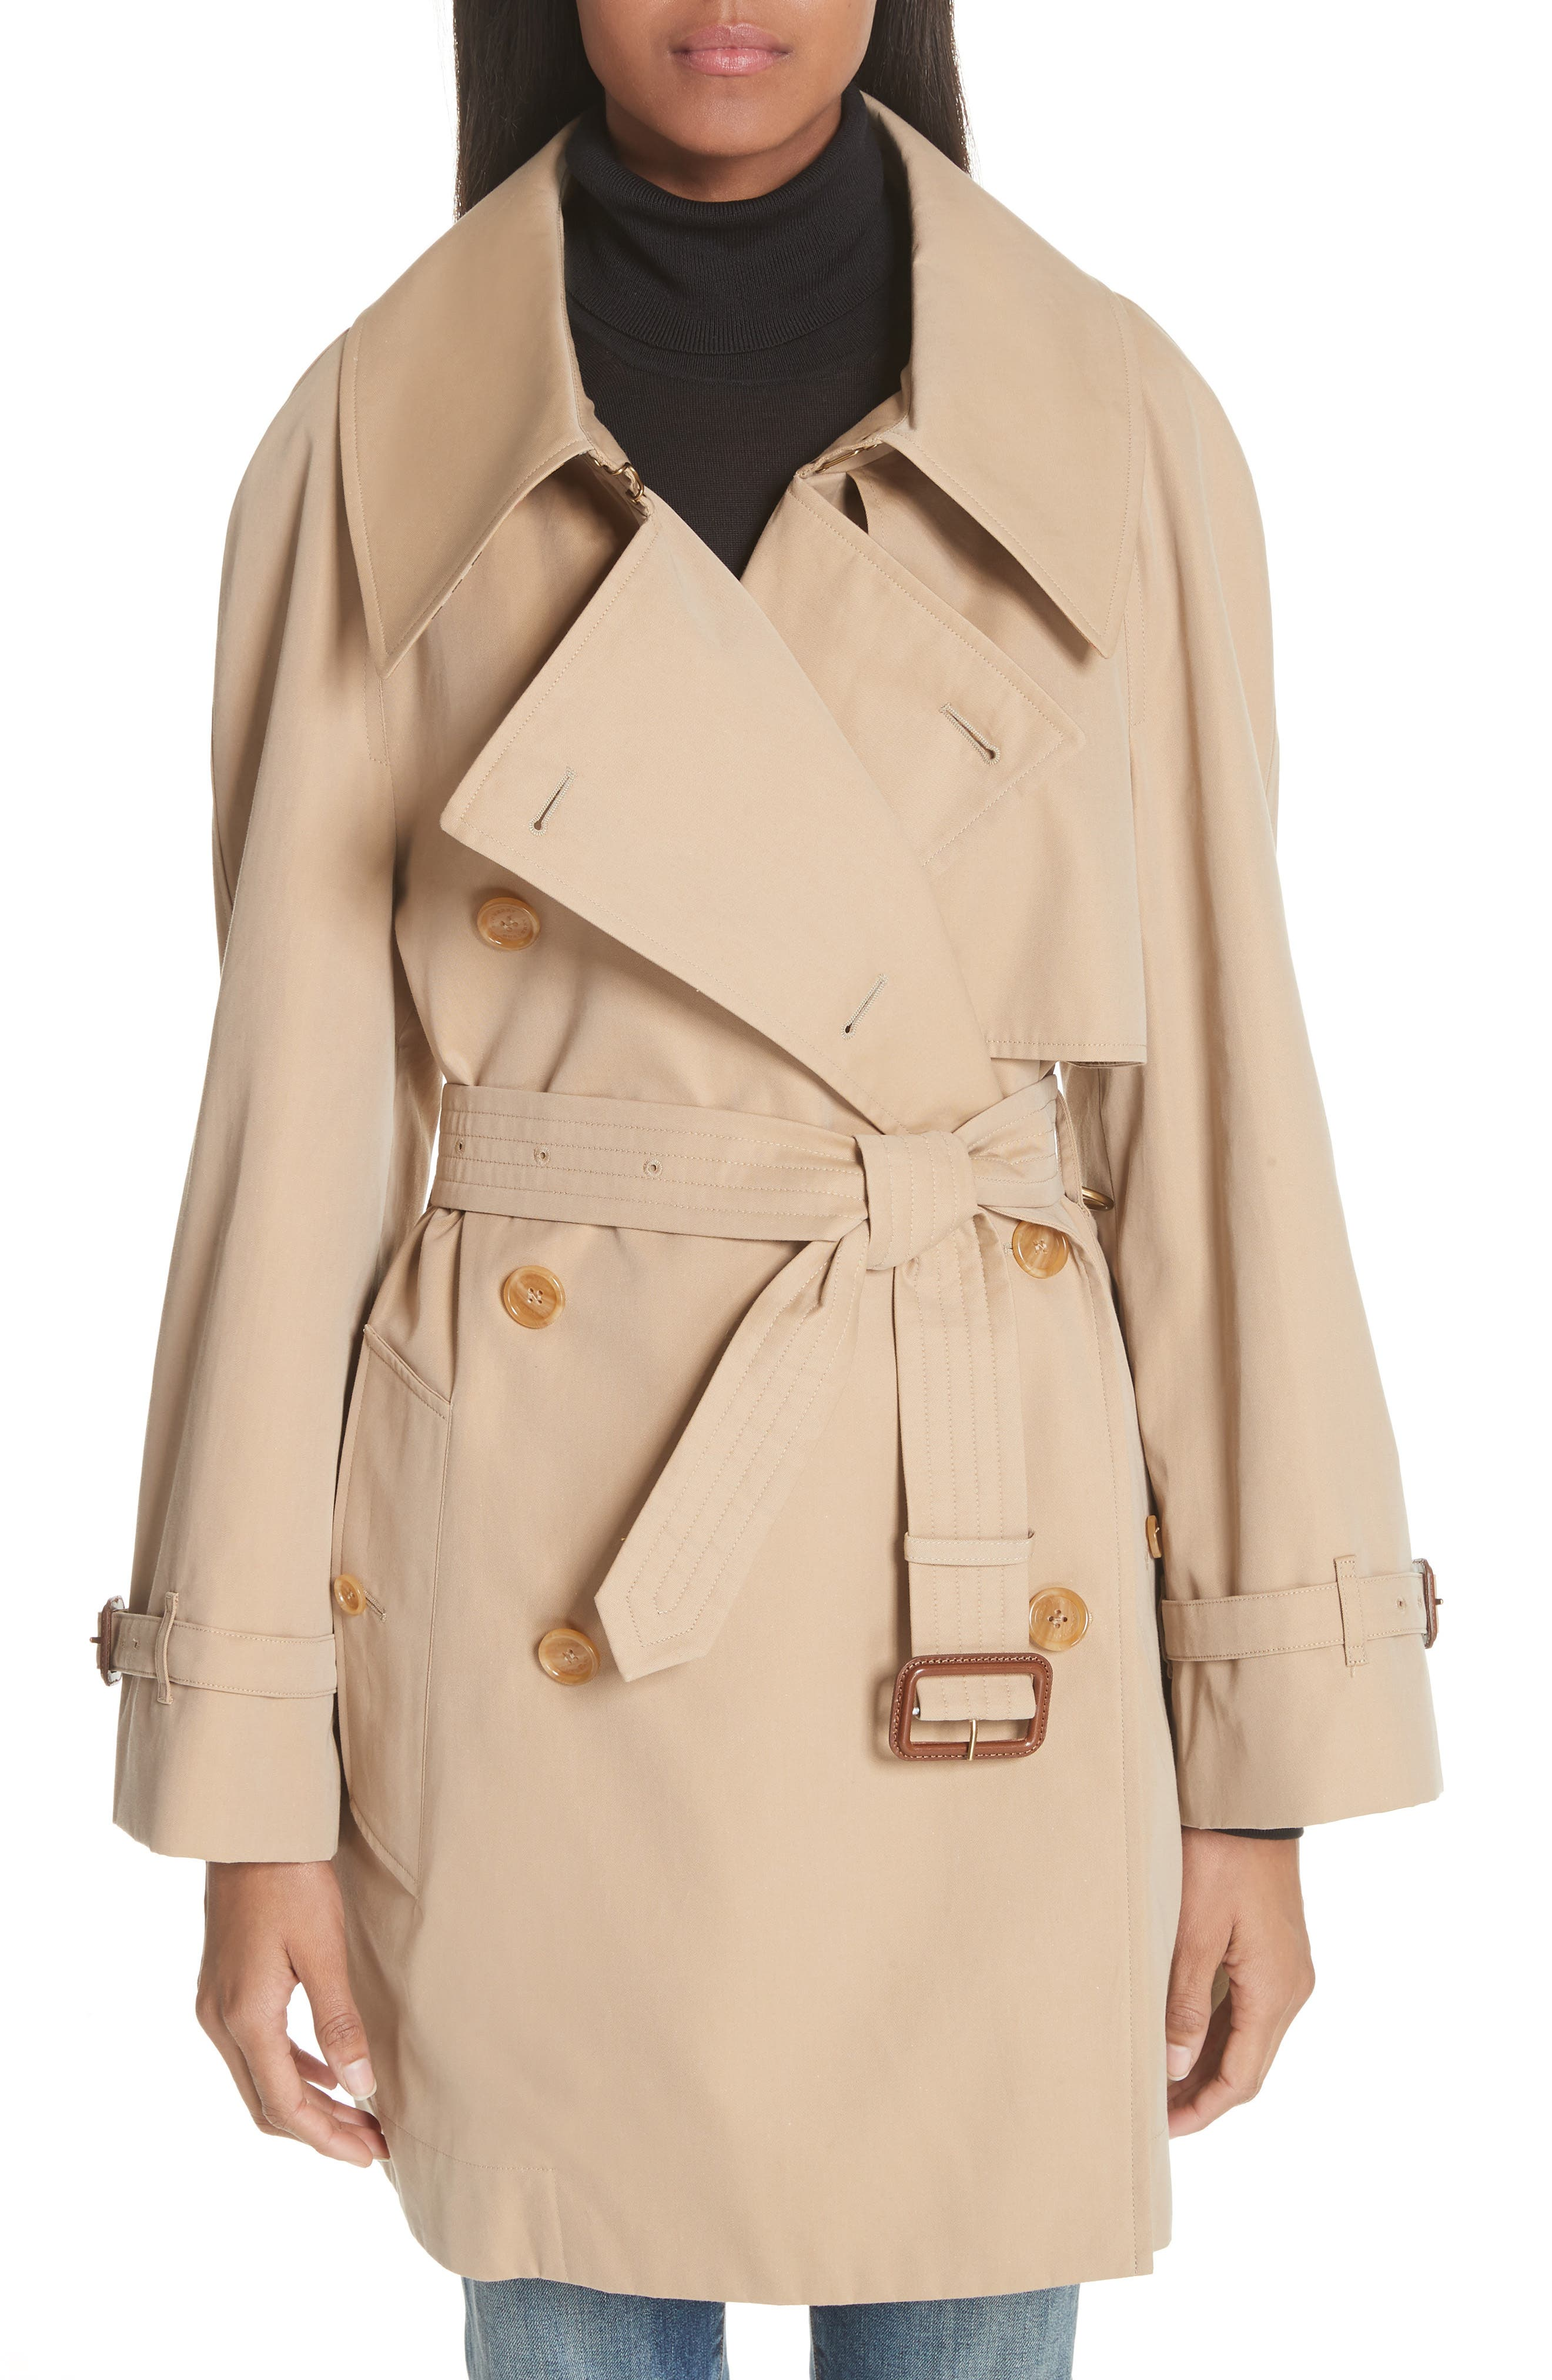 Fortingall Cotton Gabardine Trench Coat,                             Main thumbnail 1, color,                             255